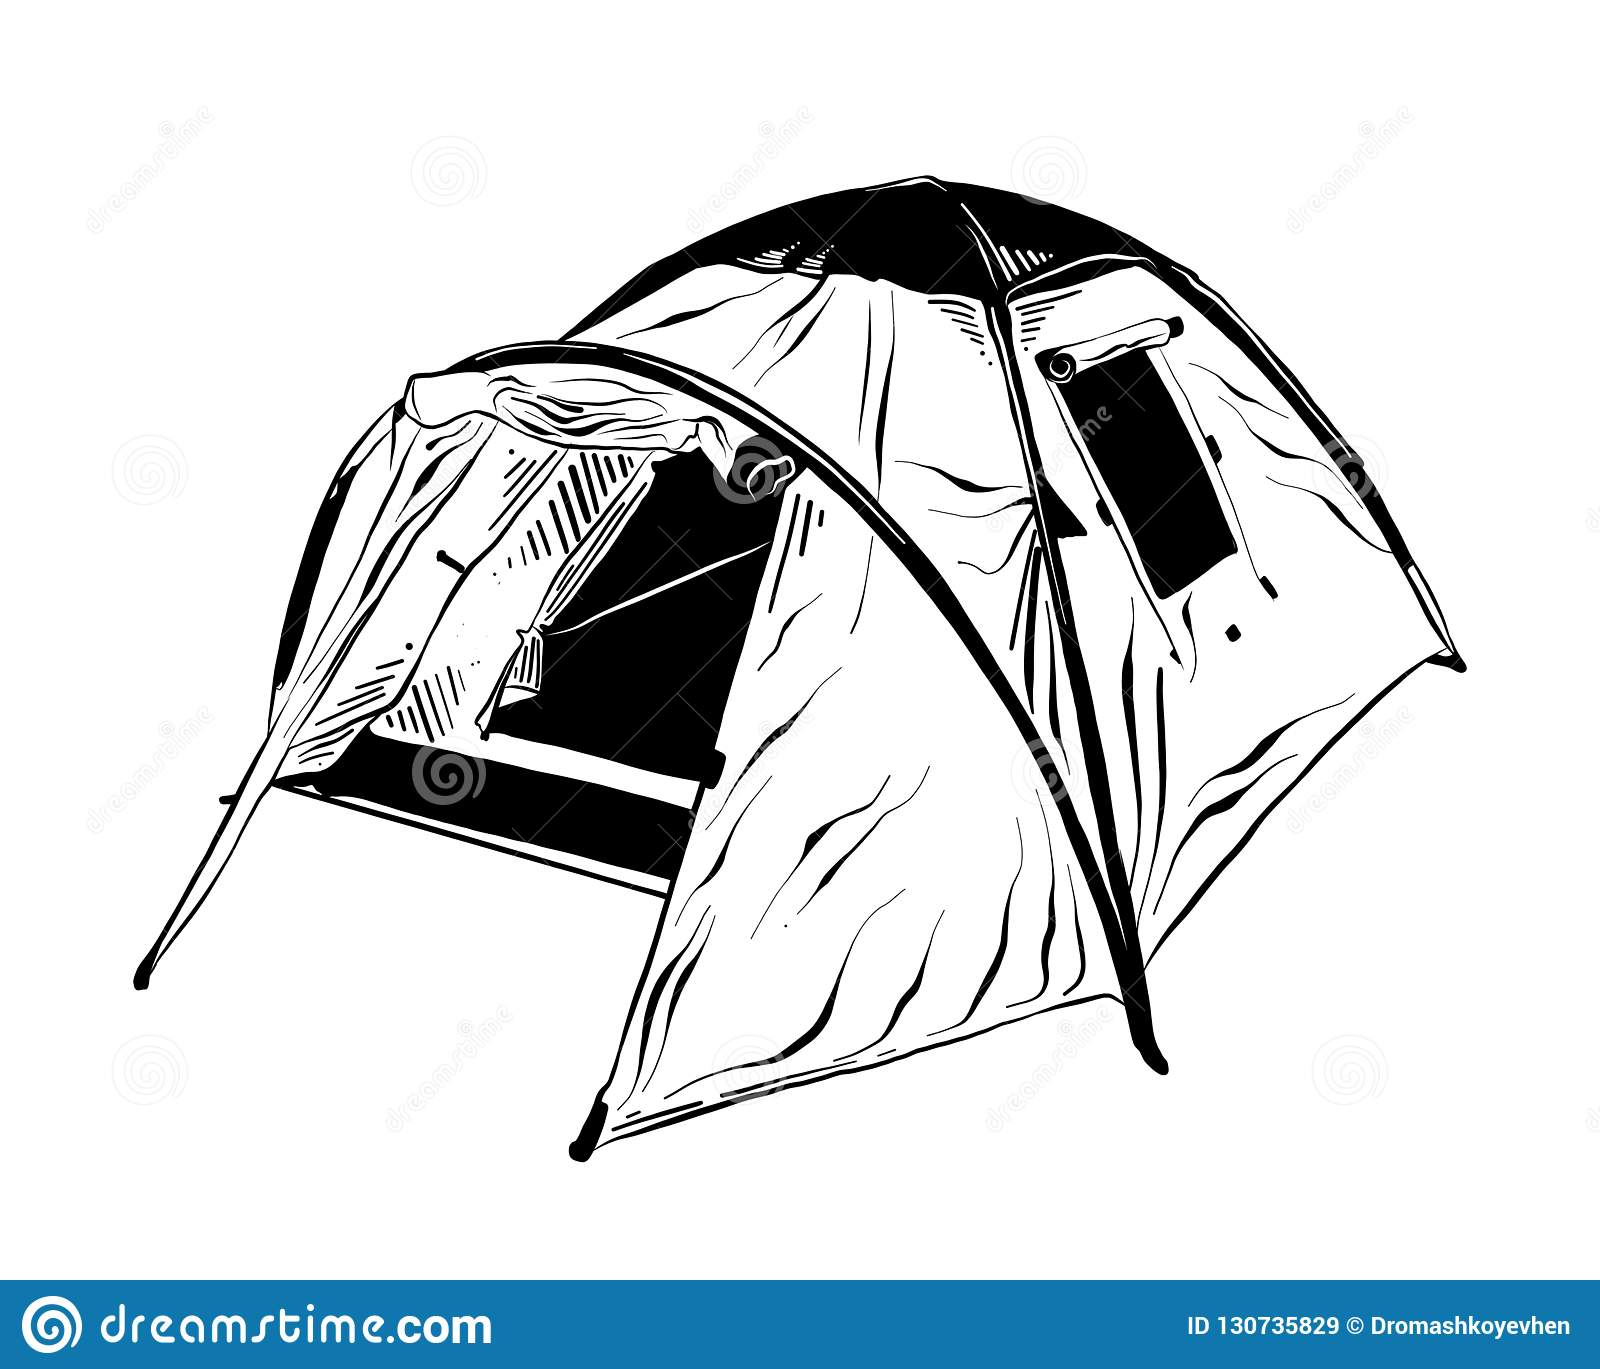 Hand drawn sketch of camping tent in black isolated on white background. Detailed vintage etching style drawing.